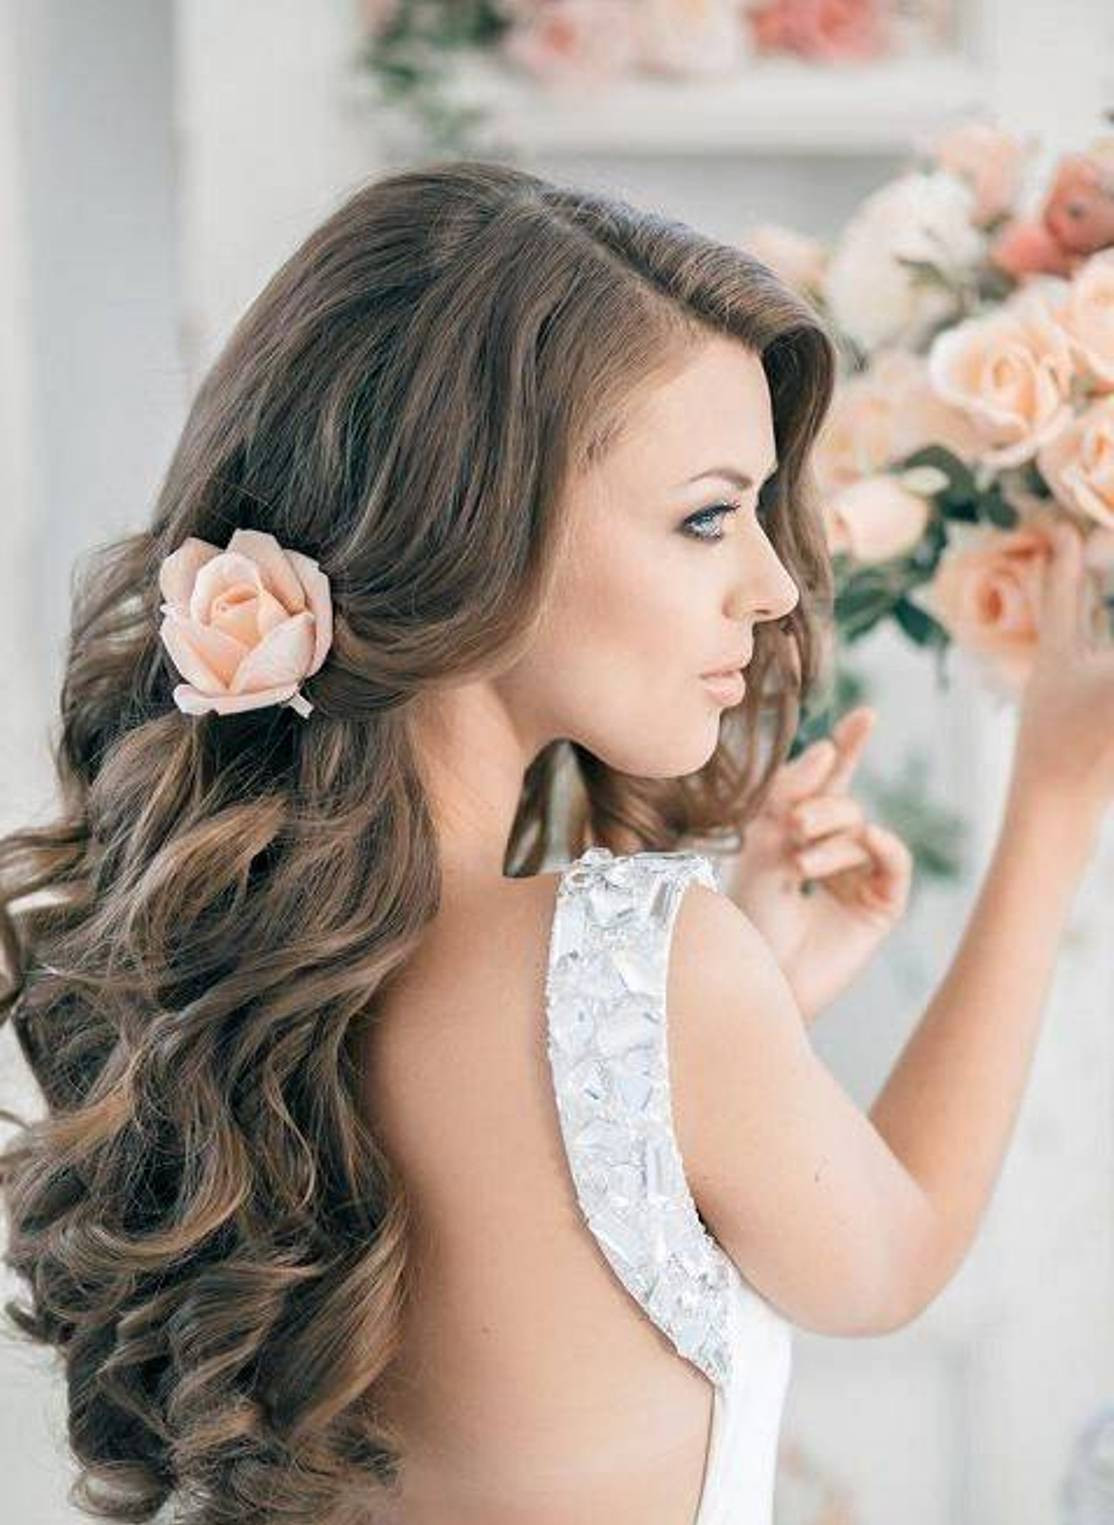 Best ideas about Wavy Wedding Hairstyle . Save or Pin Bridal Hairstyles Sirmione Wedding Now.